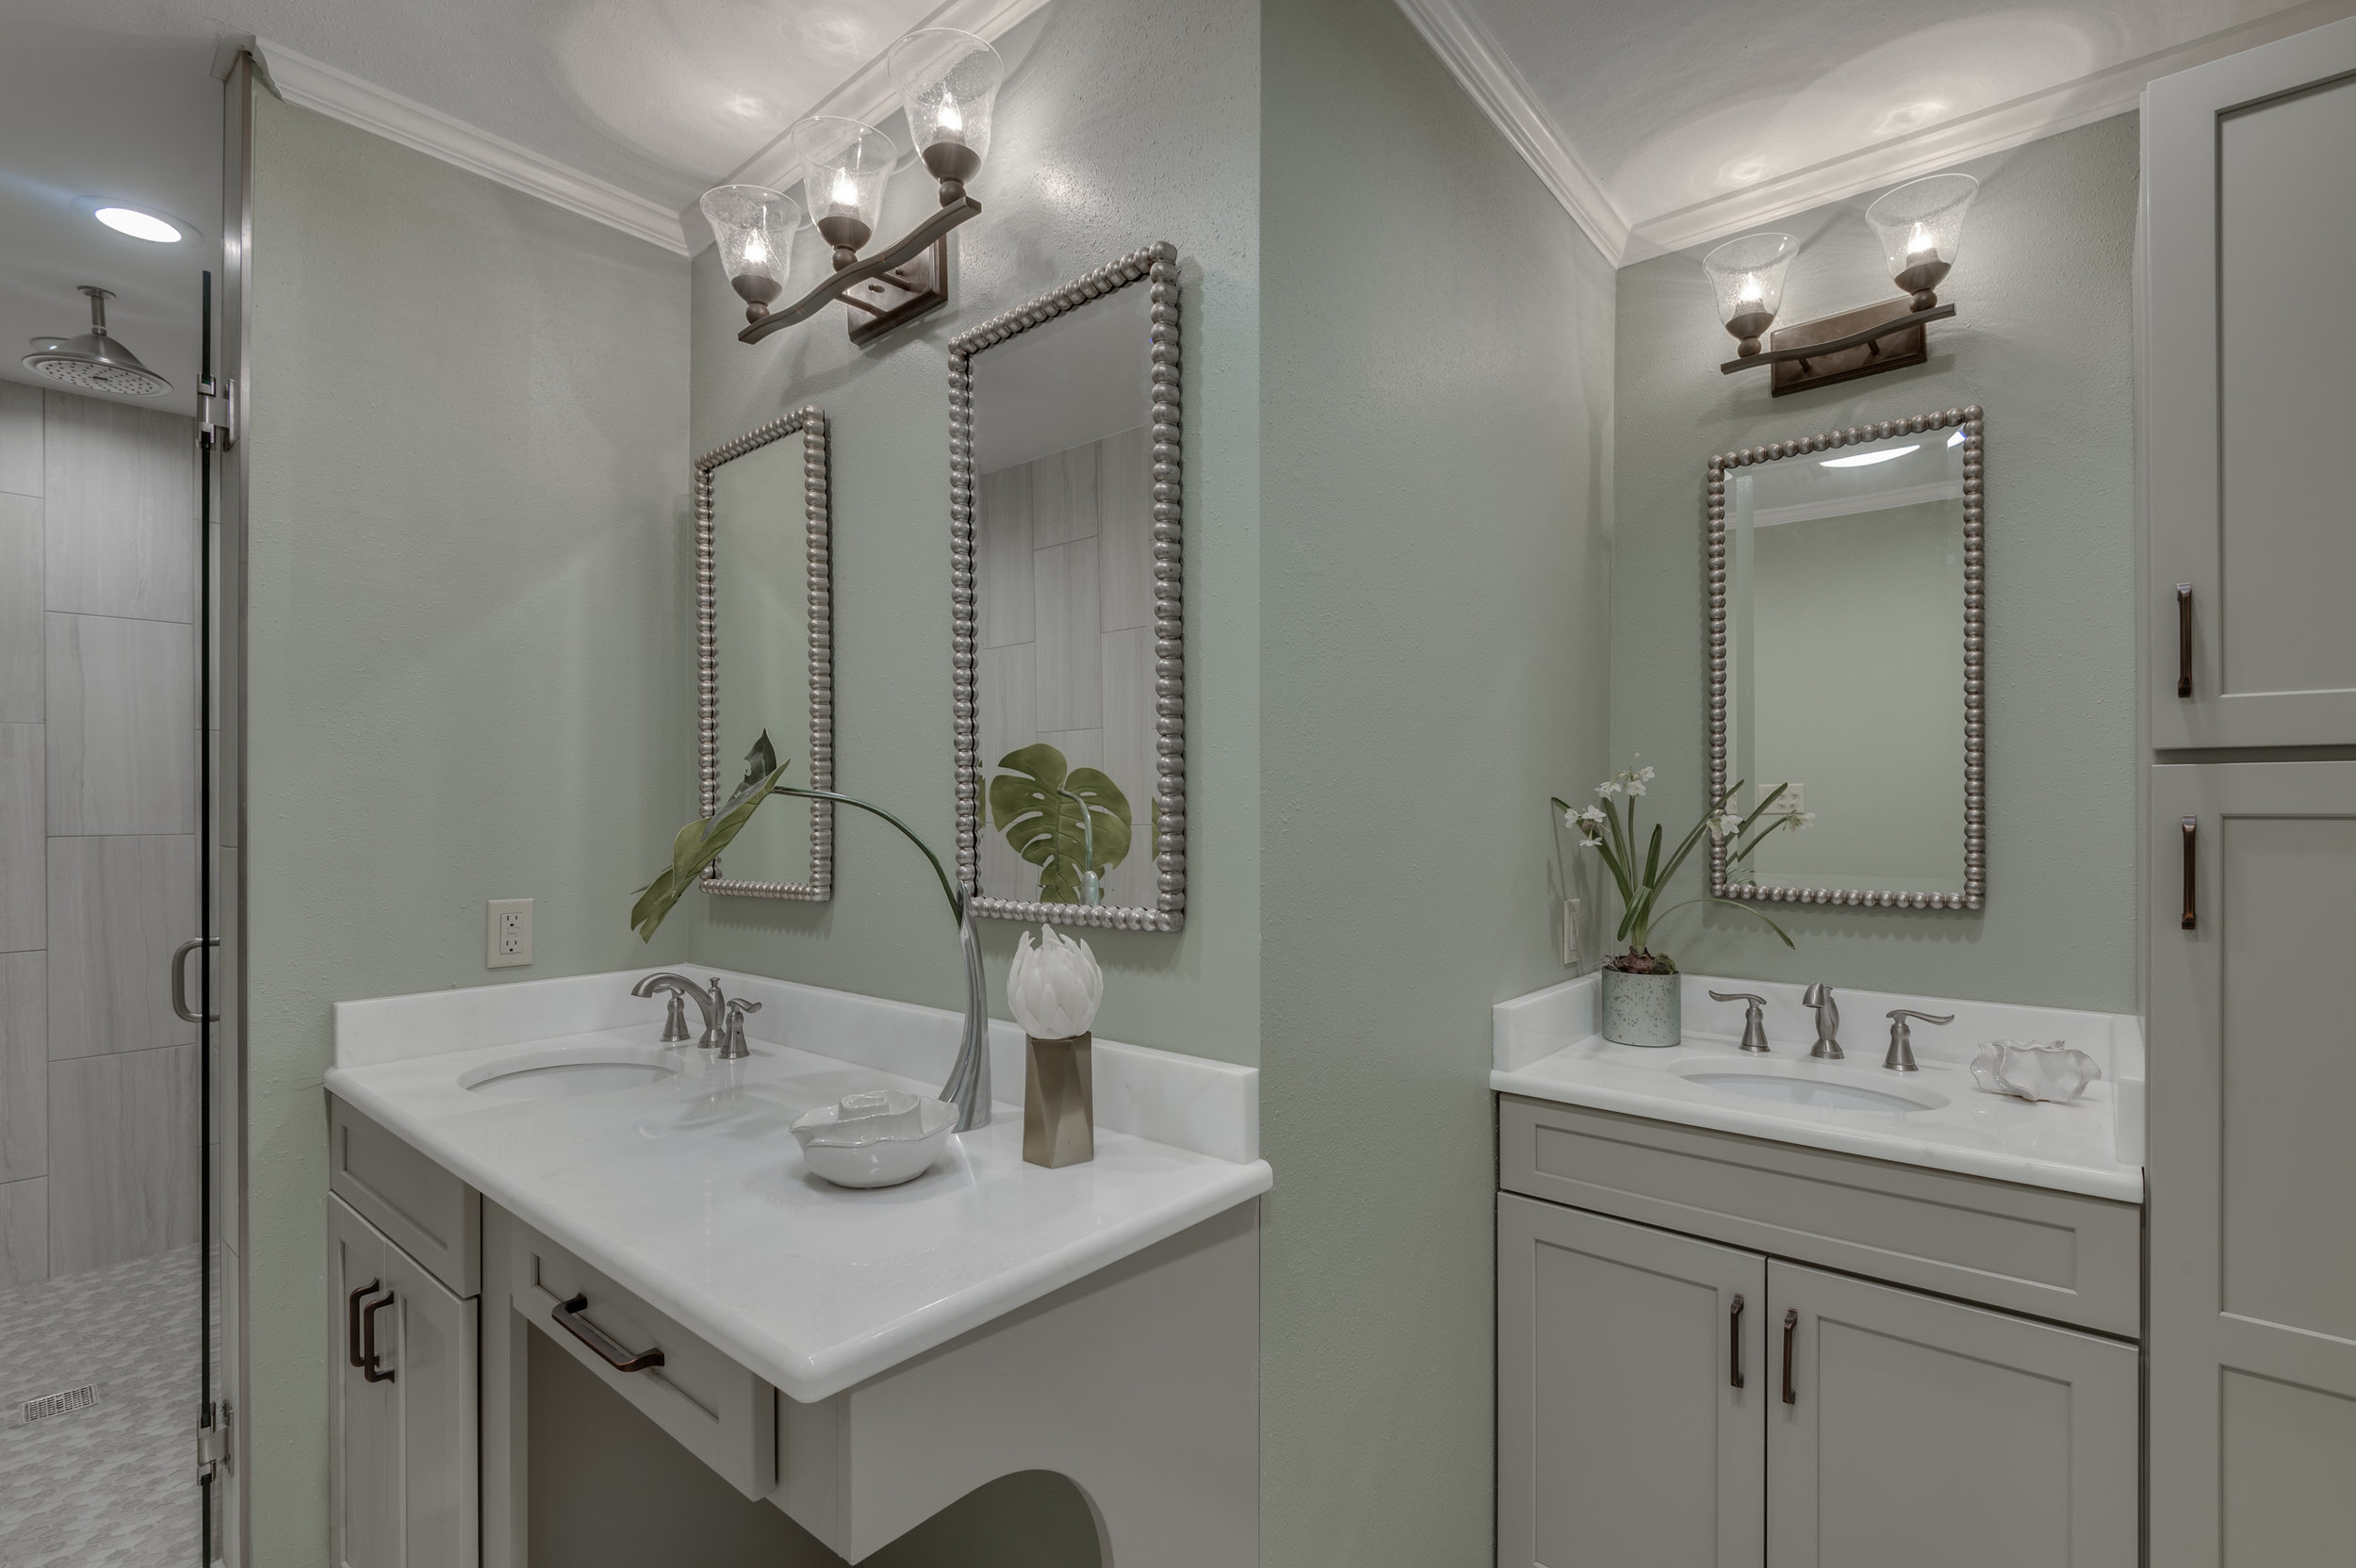 bathroom vanity design ideas best interior designers metairie khb interiors